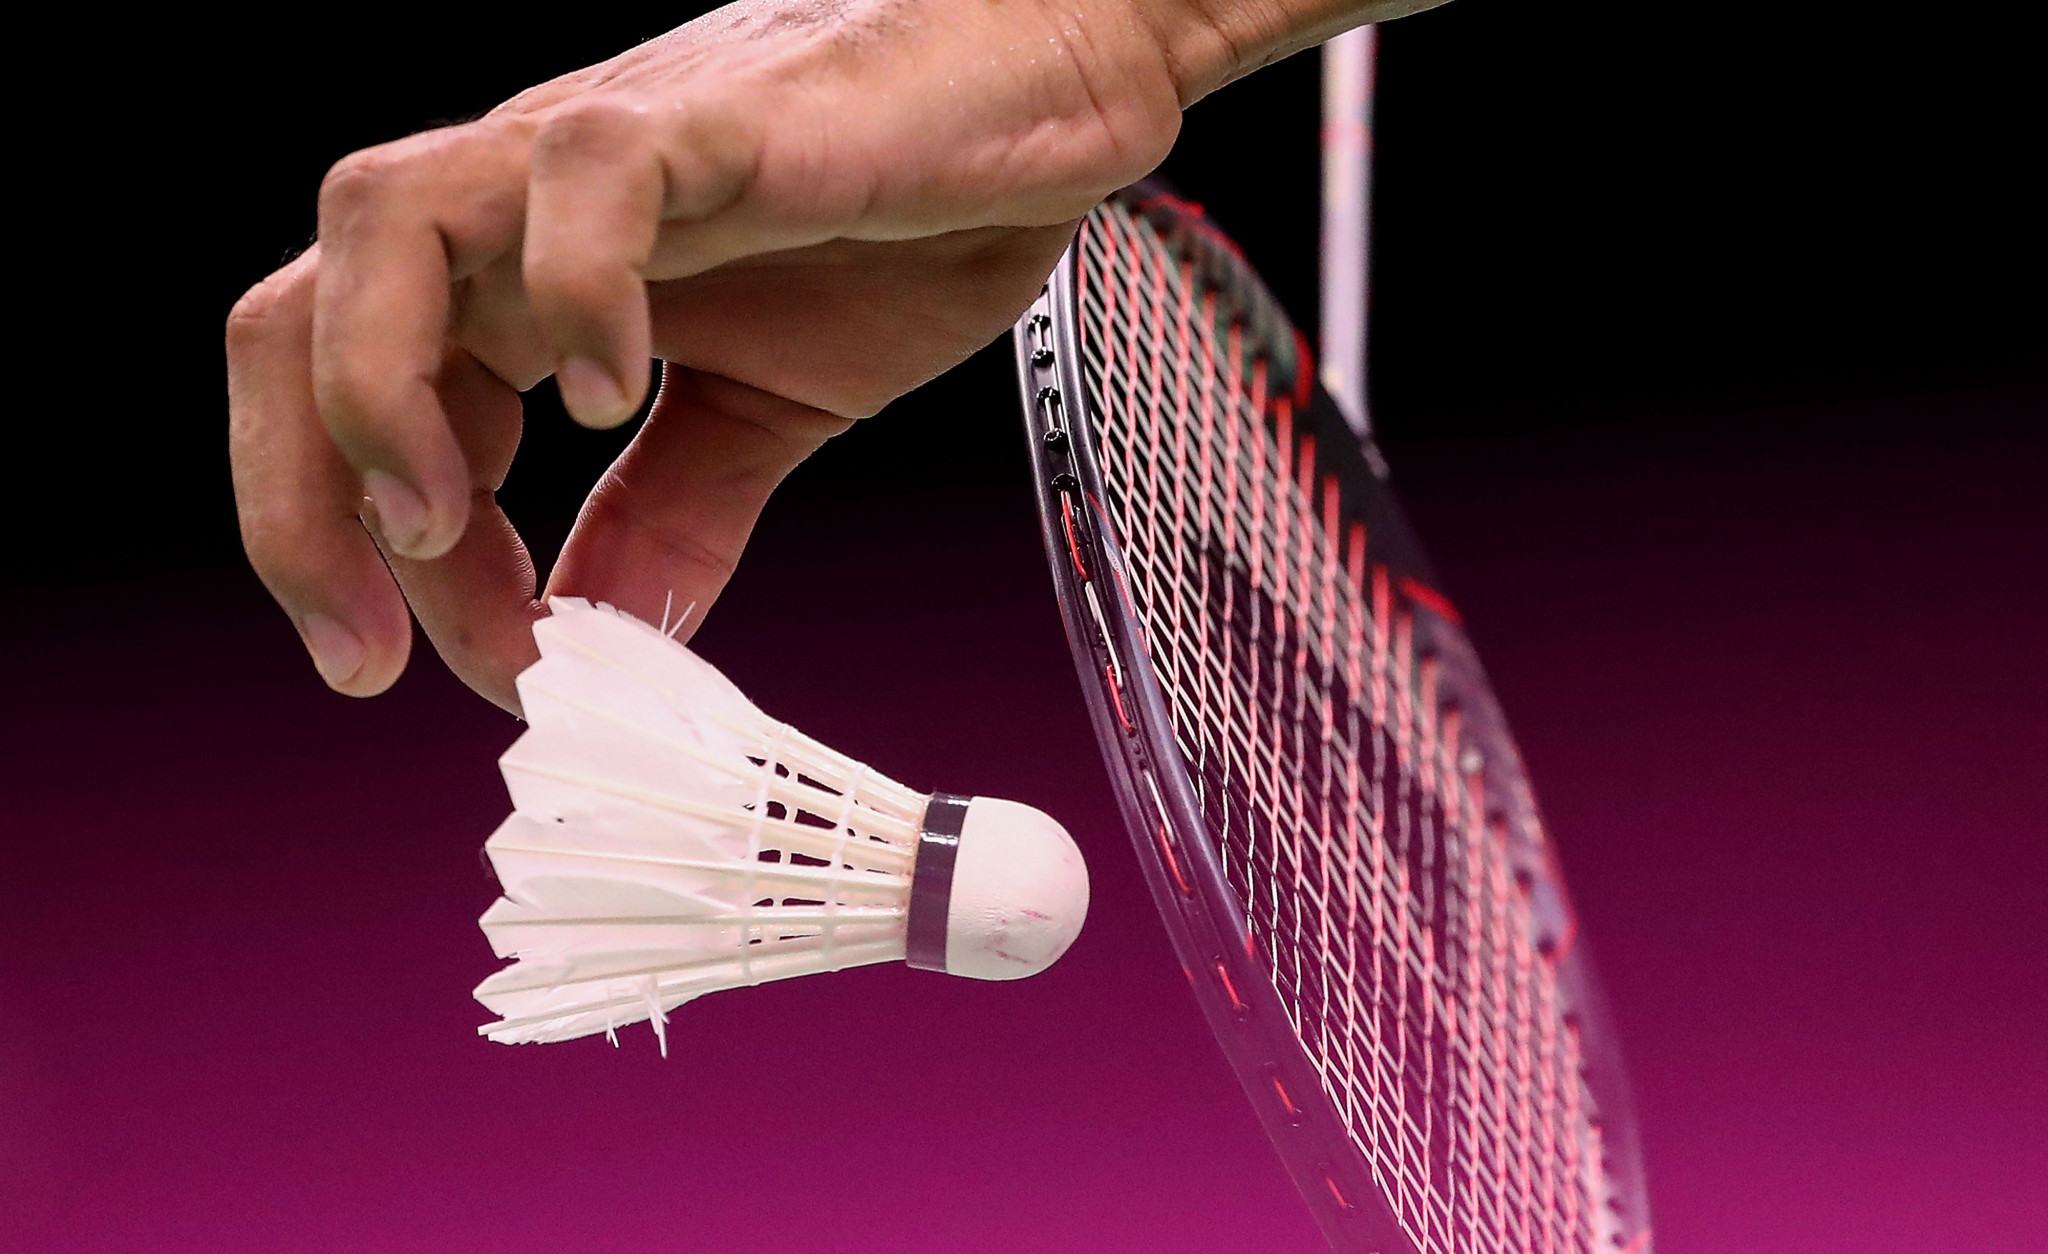 Spanish Para Badminton International offers last qualifying chance for sport's Paralympic debut in Tokyo